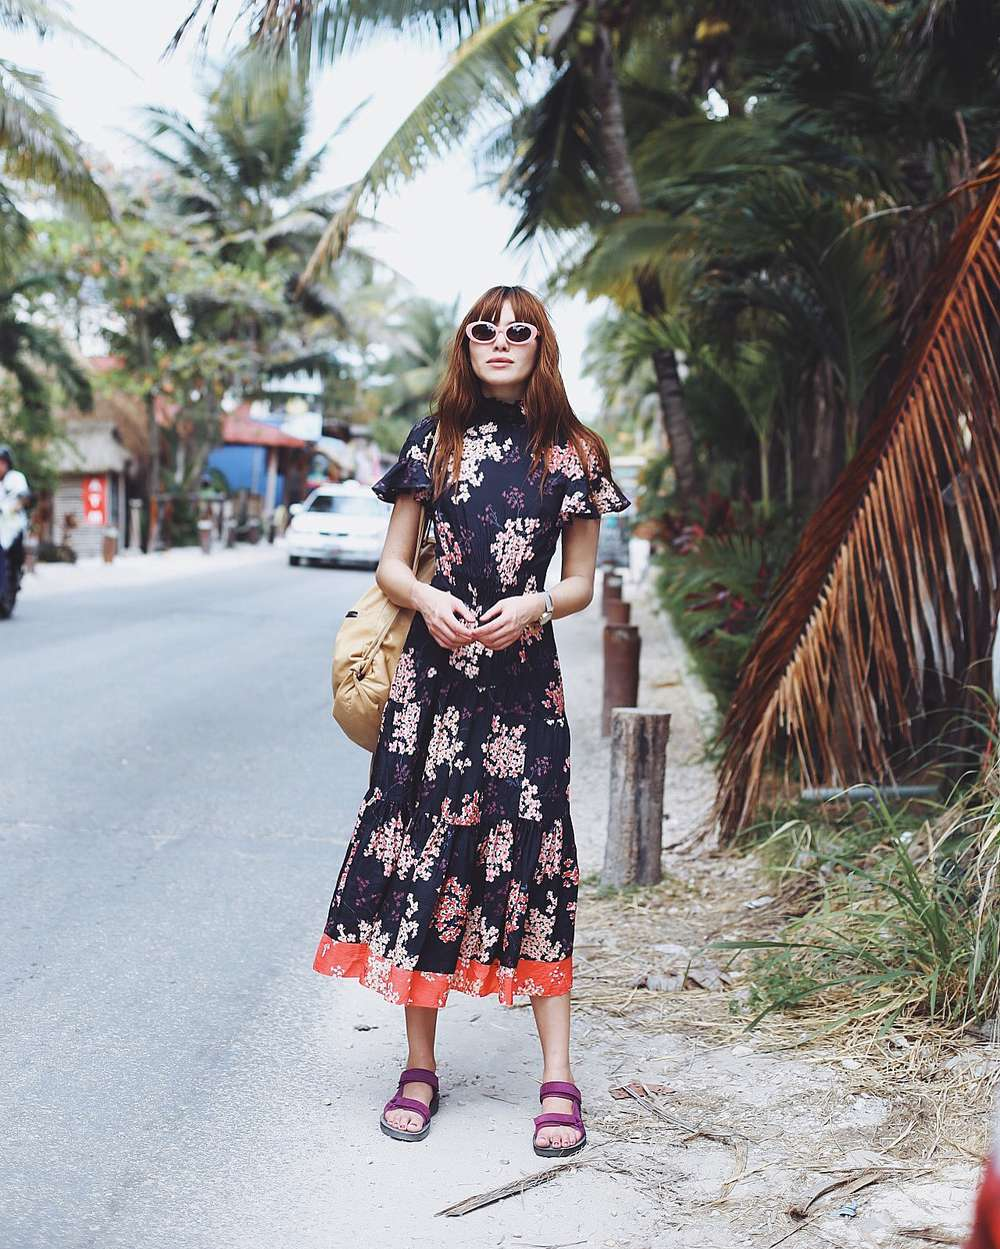 Natalie Suarez wearing dress on street in Tulum Mexico